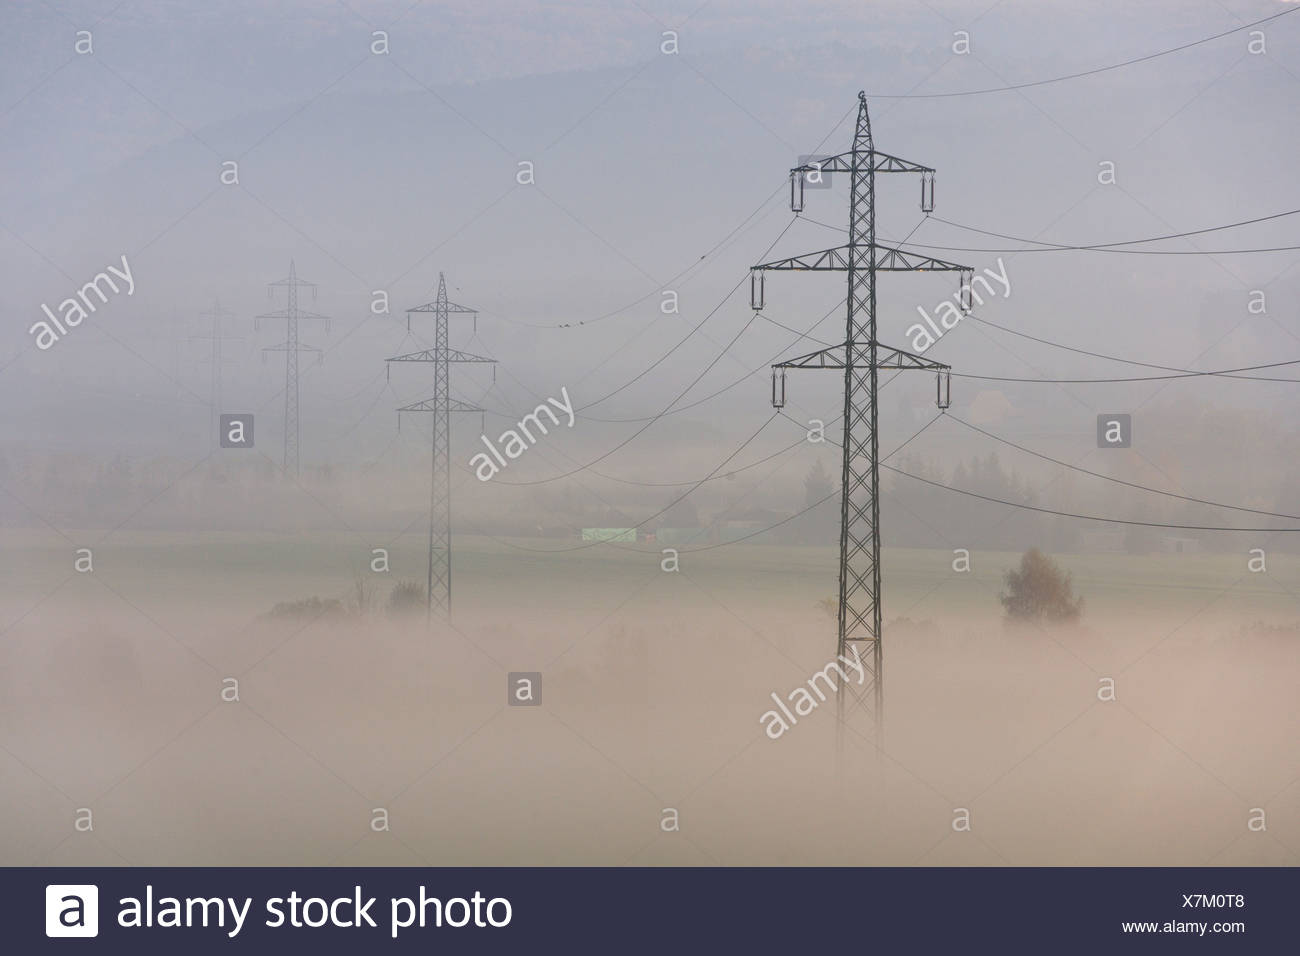 High voltage power line in the morning mist, Berndorf, Triestingtal valley, Lower Austria, Austria, Europe - Stock Image